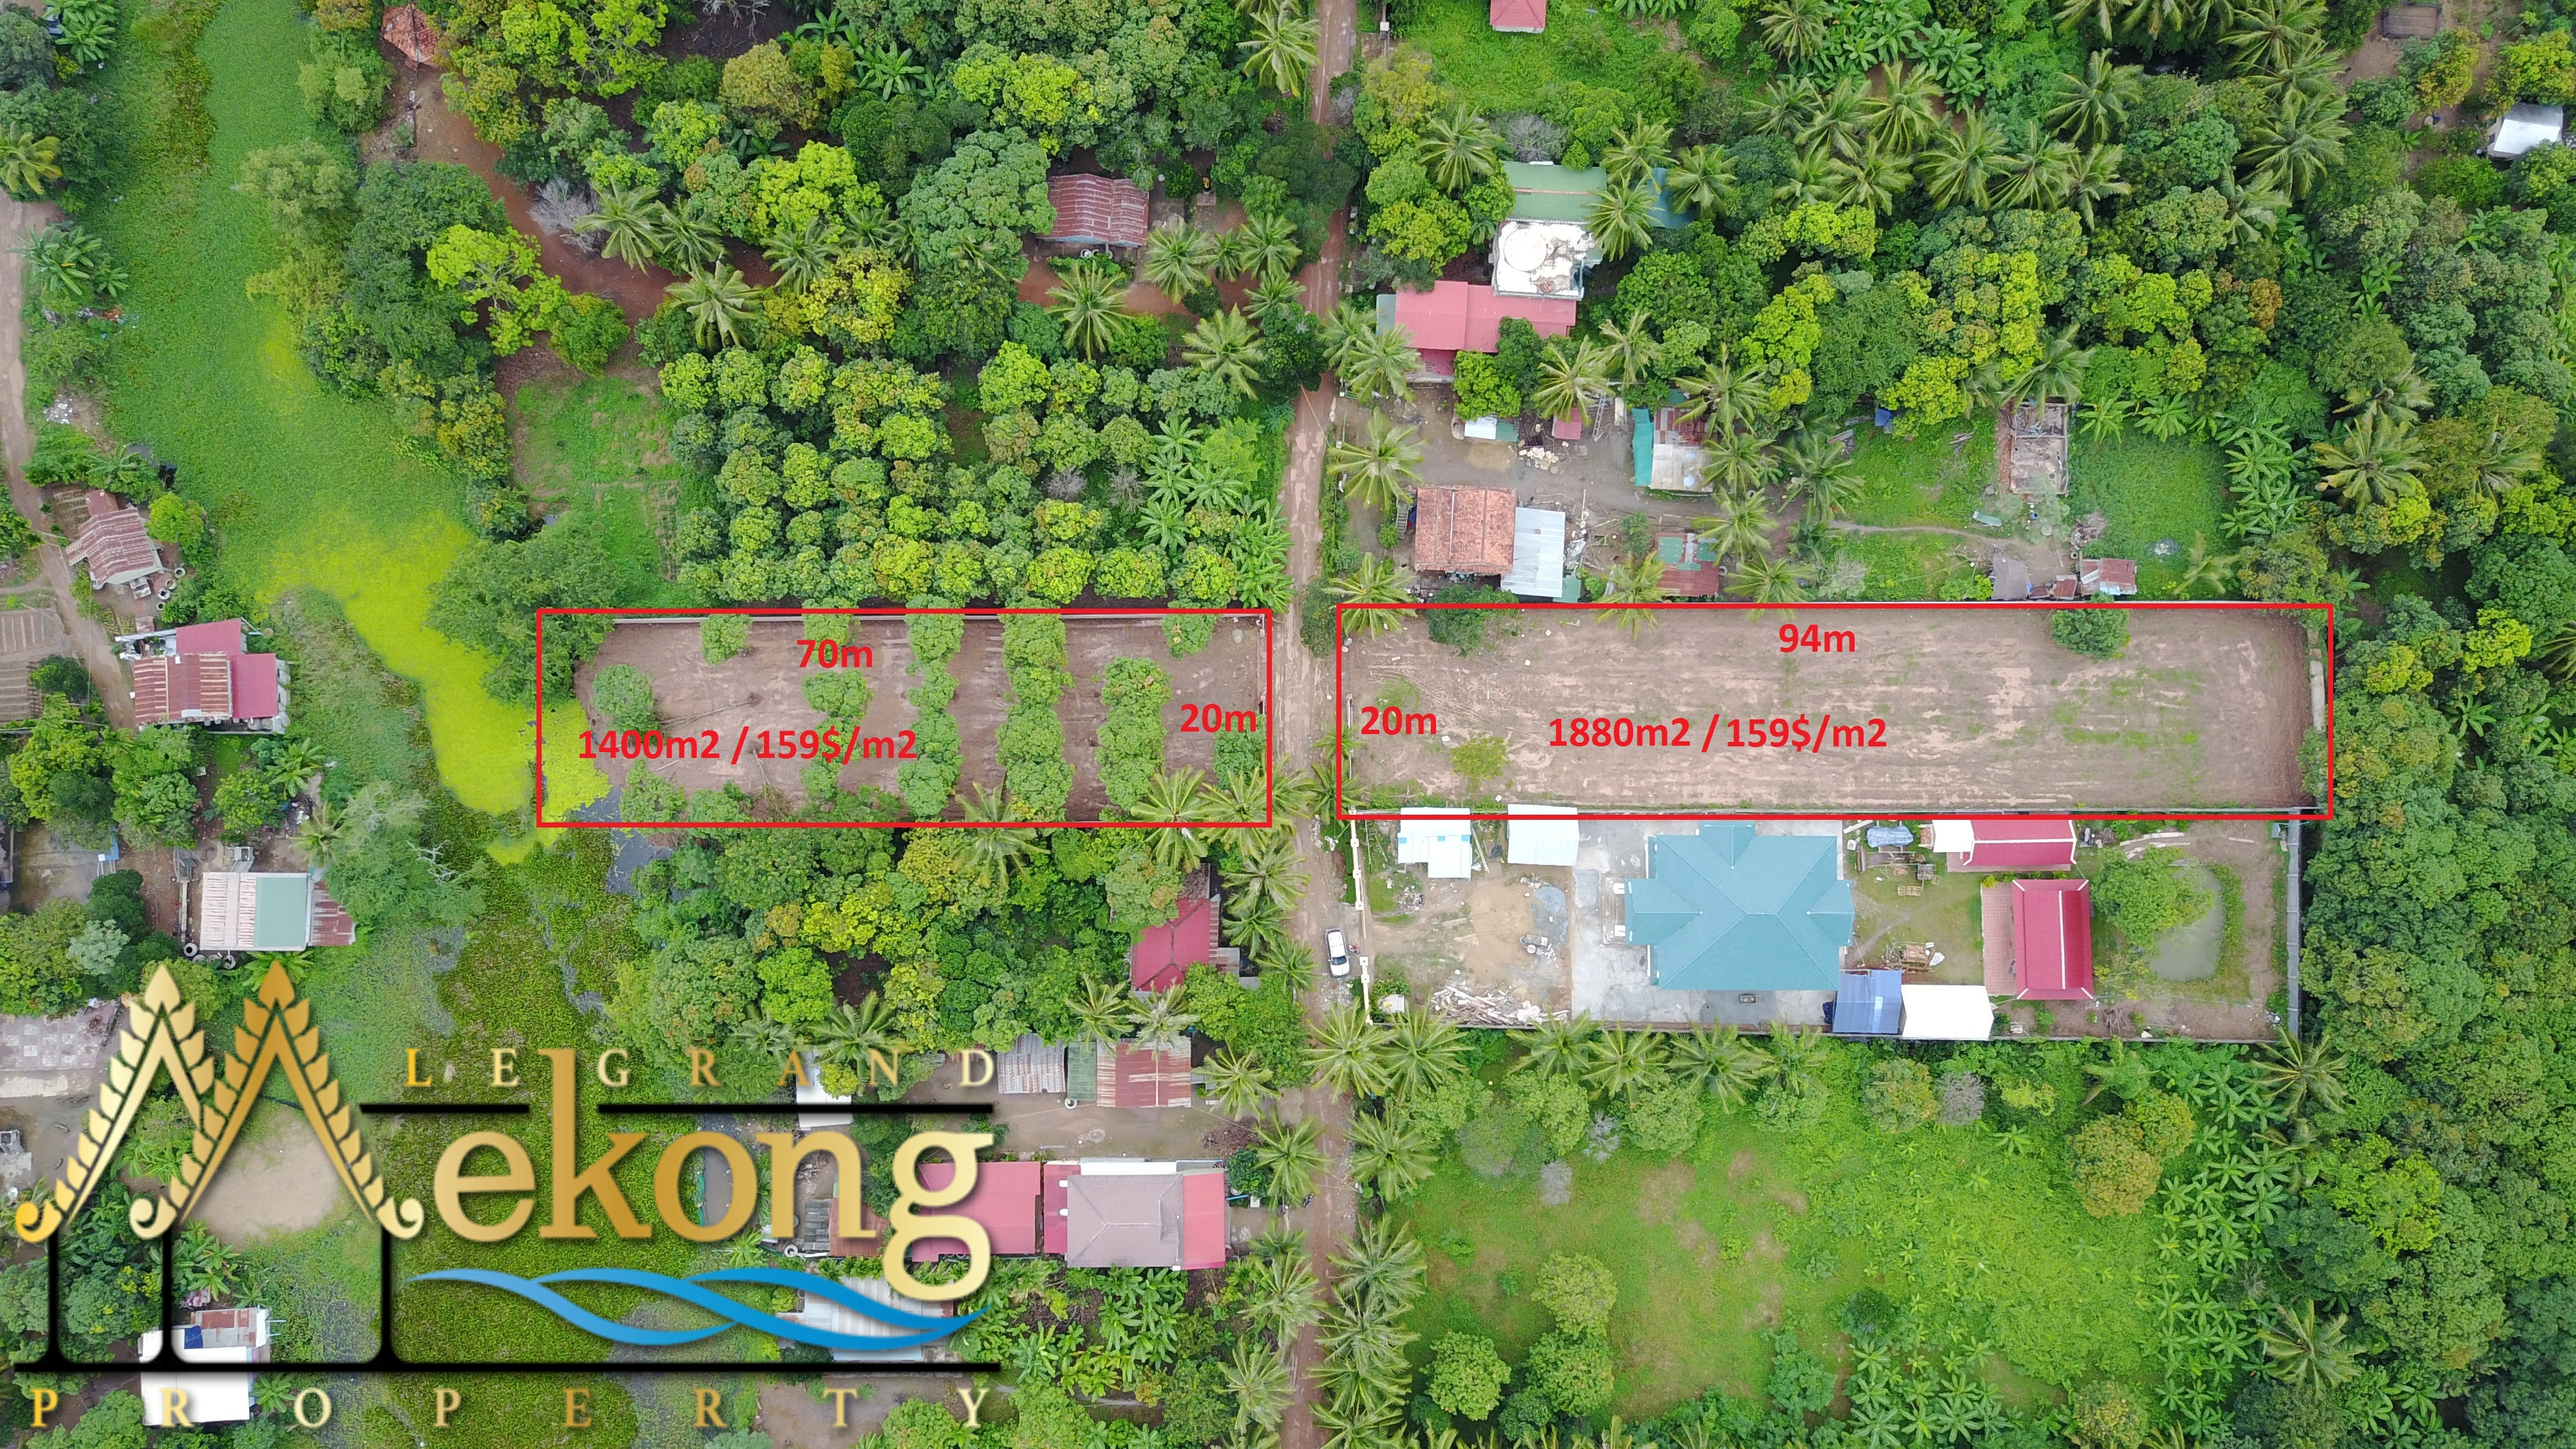 3280m2 Land Lots For Sale on National Road 1 | LGM273